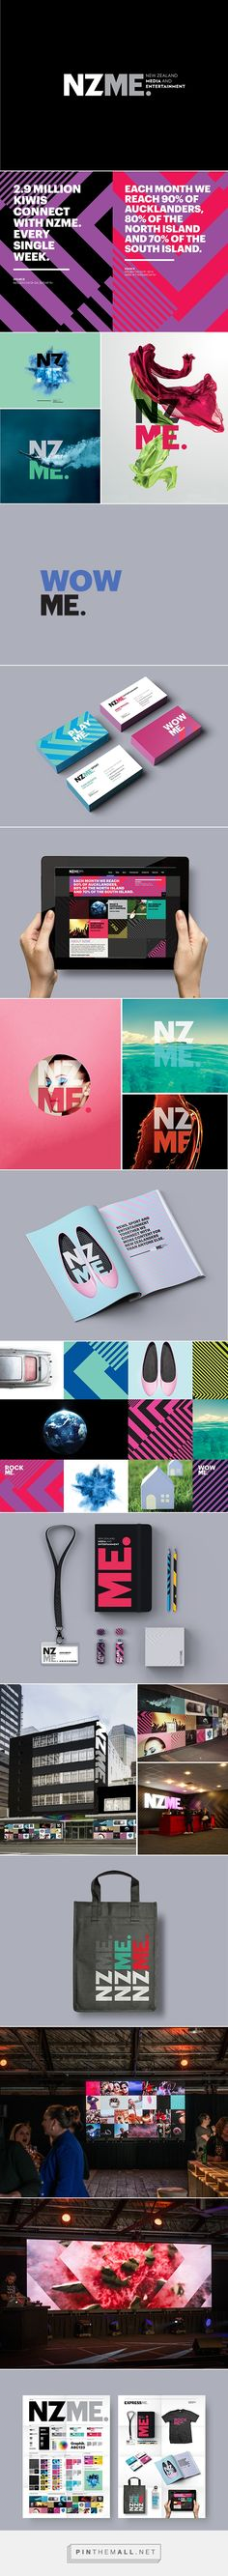 New Zealand Media & Entertainment Branding on Behance - created via http://pinthemall.net